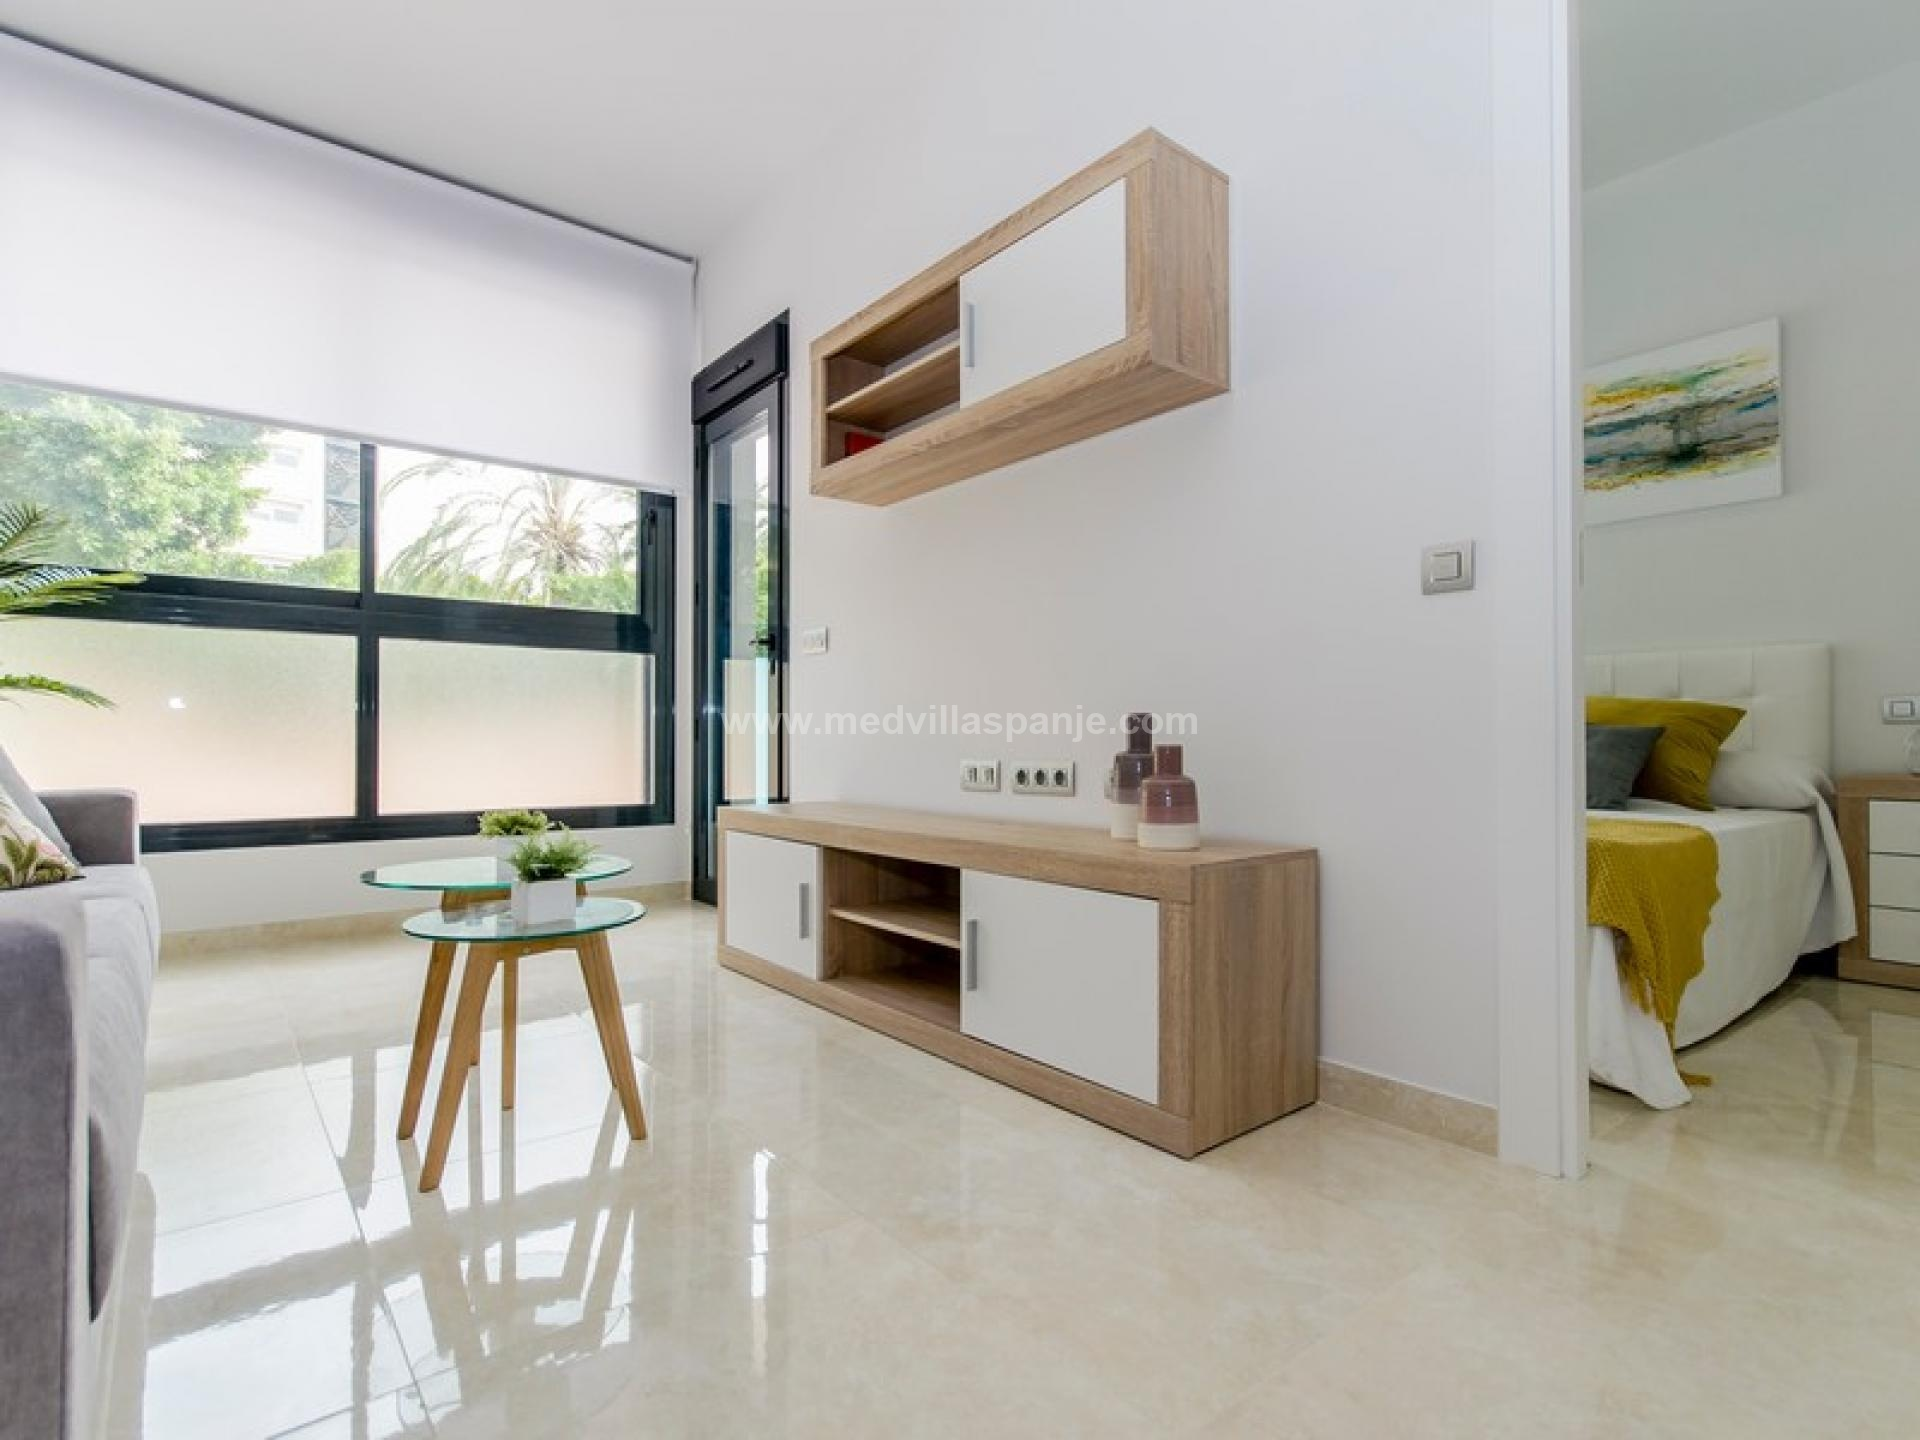 2 bedroom Apartment with terrace in Torrevieja - New build in Medvilla Spanje